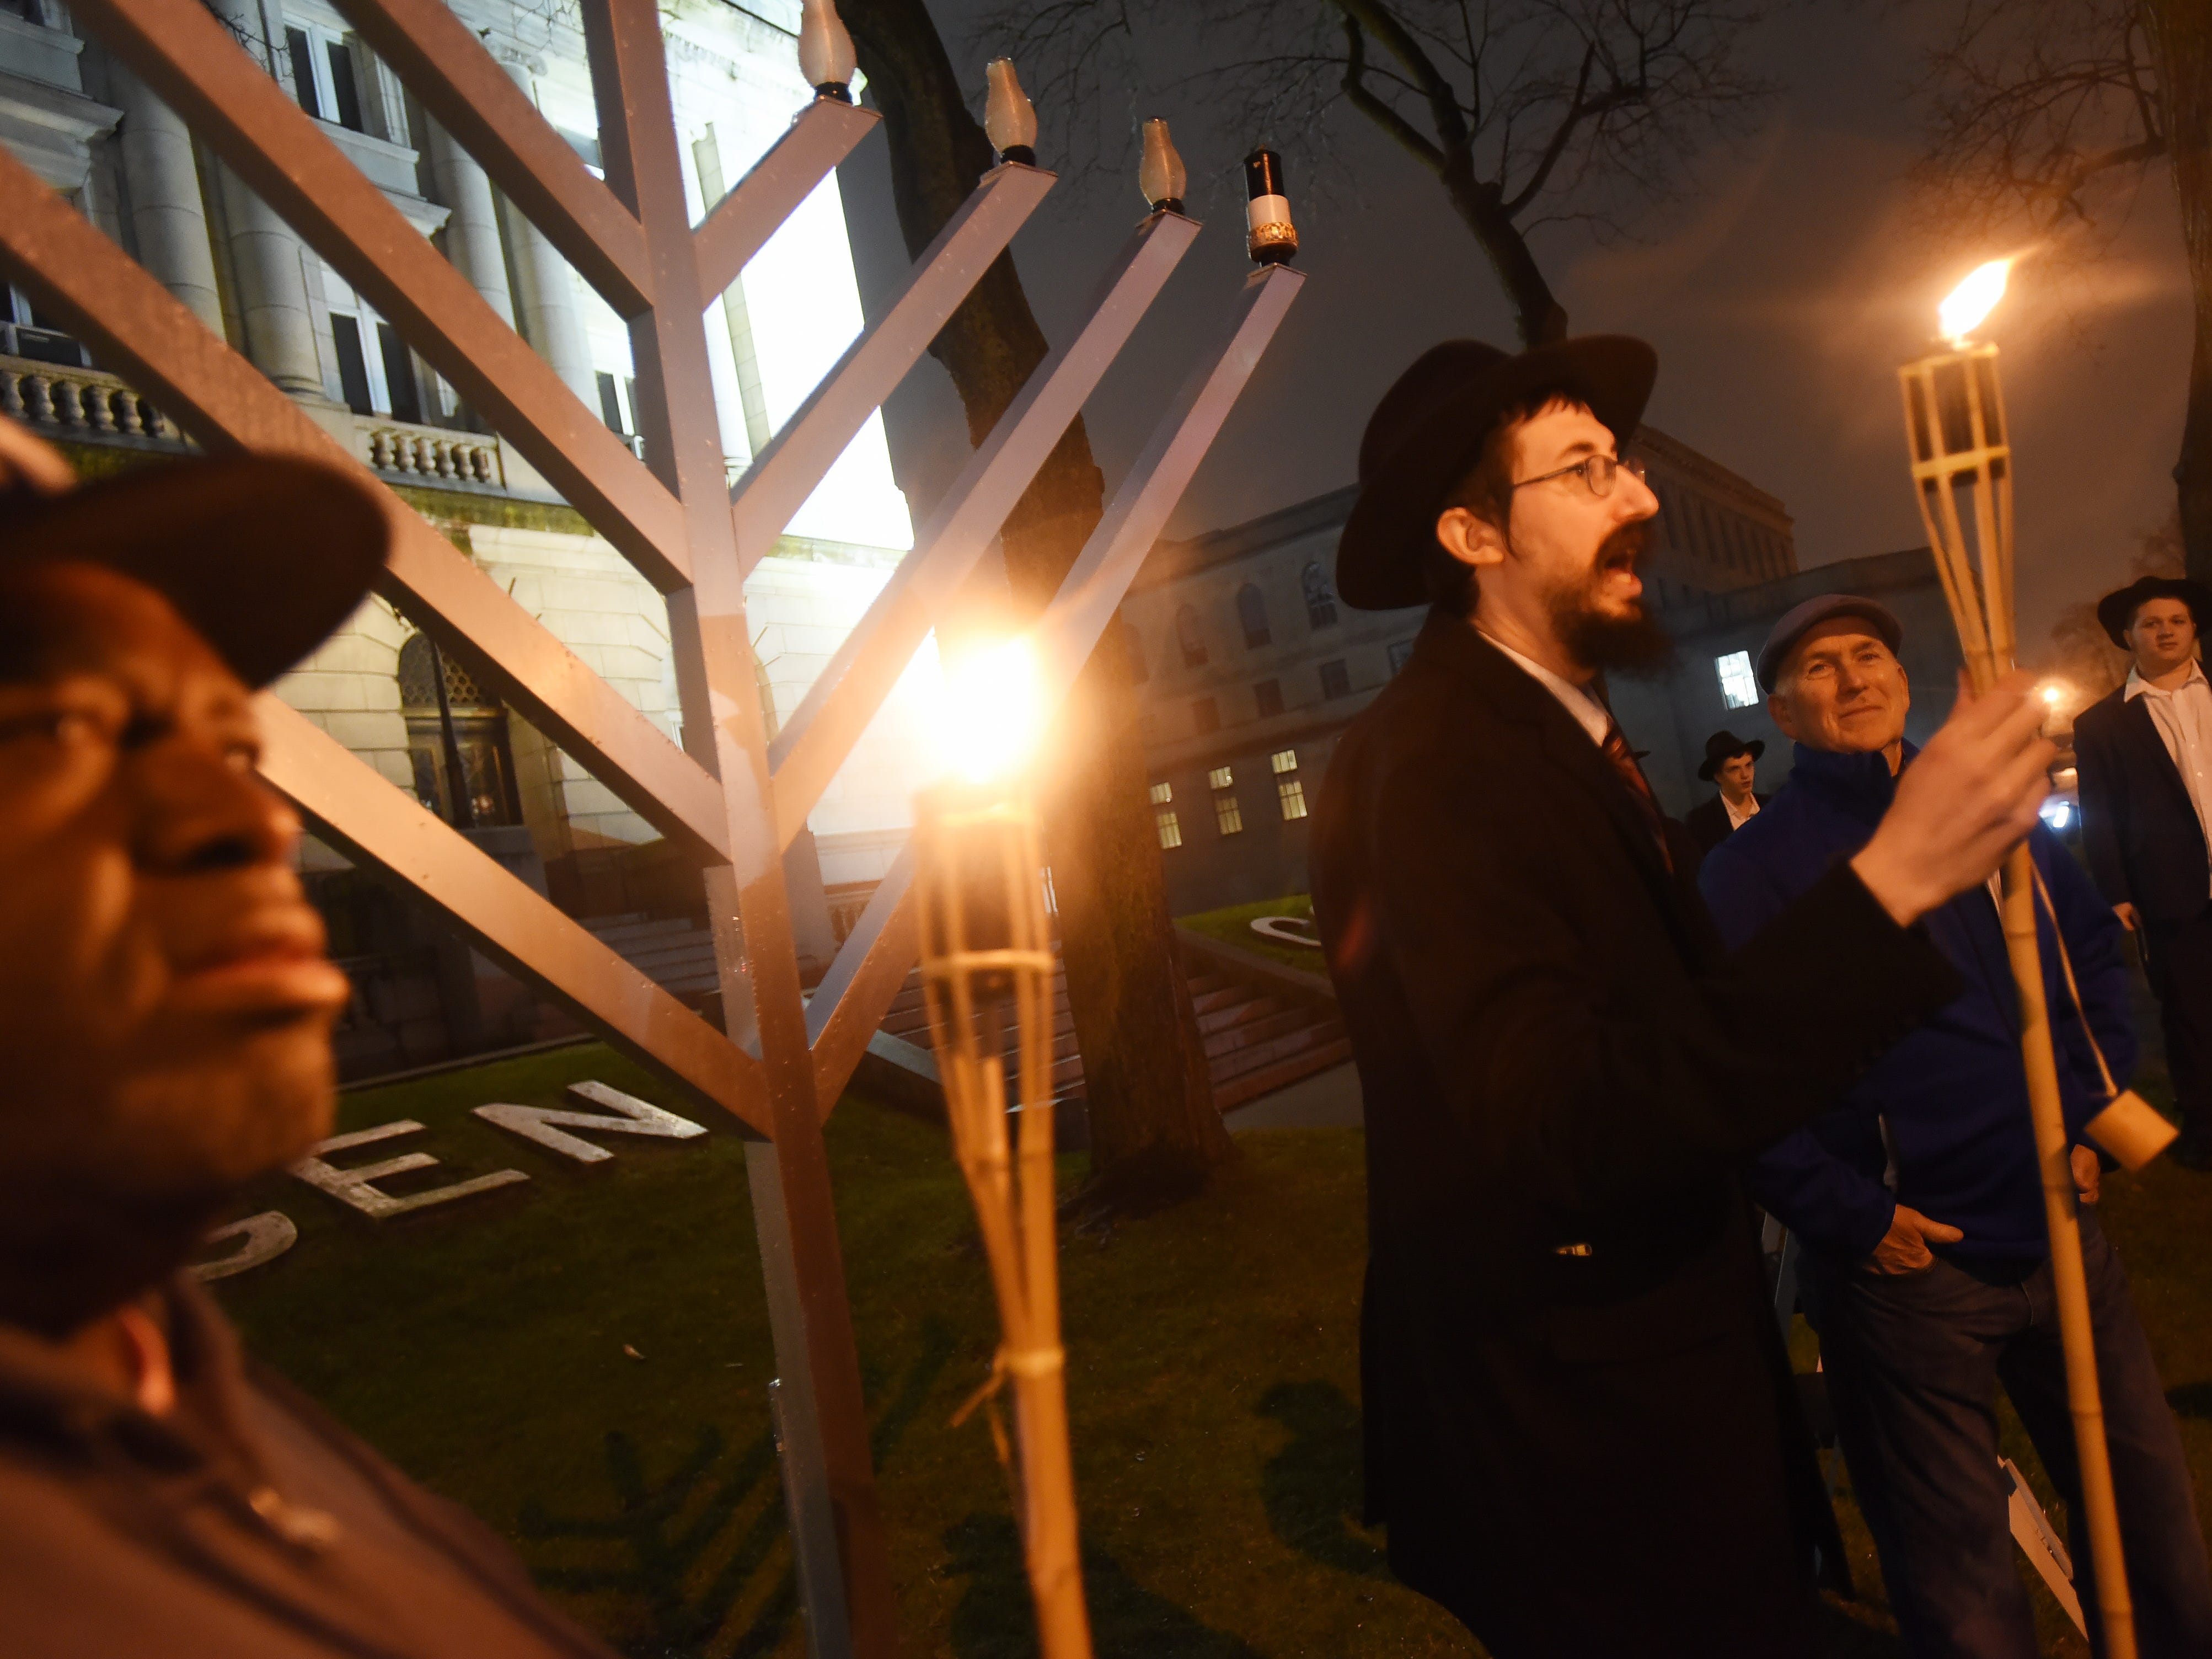 Rabbi Mendy Kaminker from Chabad of Hackensack, holds a torch as he speaks to participants while Deputy Hackensack Mayor David Sims (foreground) looks on prior to the lighting ceremony to celebrate the 2018 Hanukkah season at the front lawn of Bergen County Courthouse in Hackensack on 12/02/18.